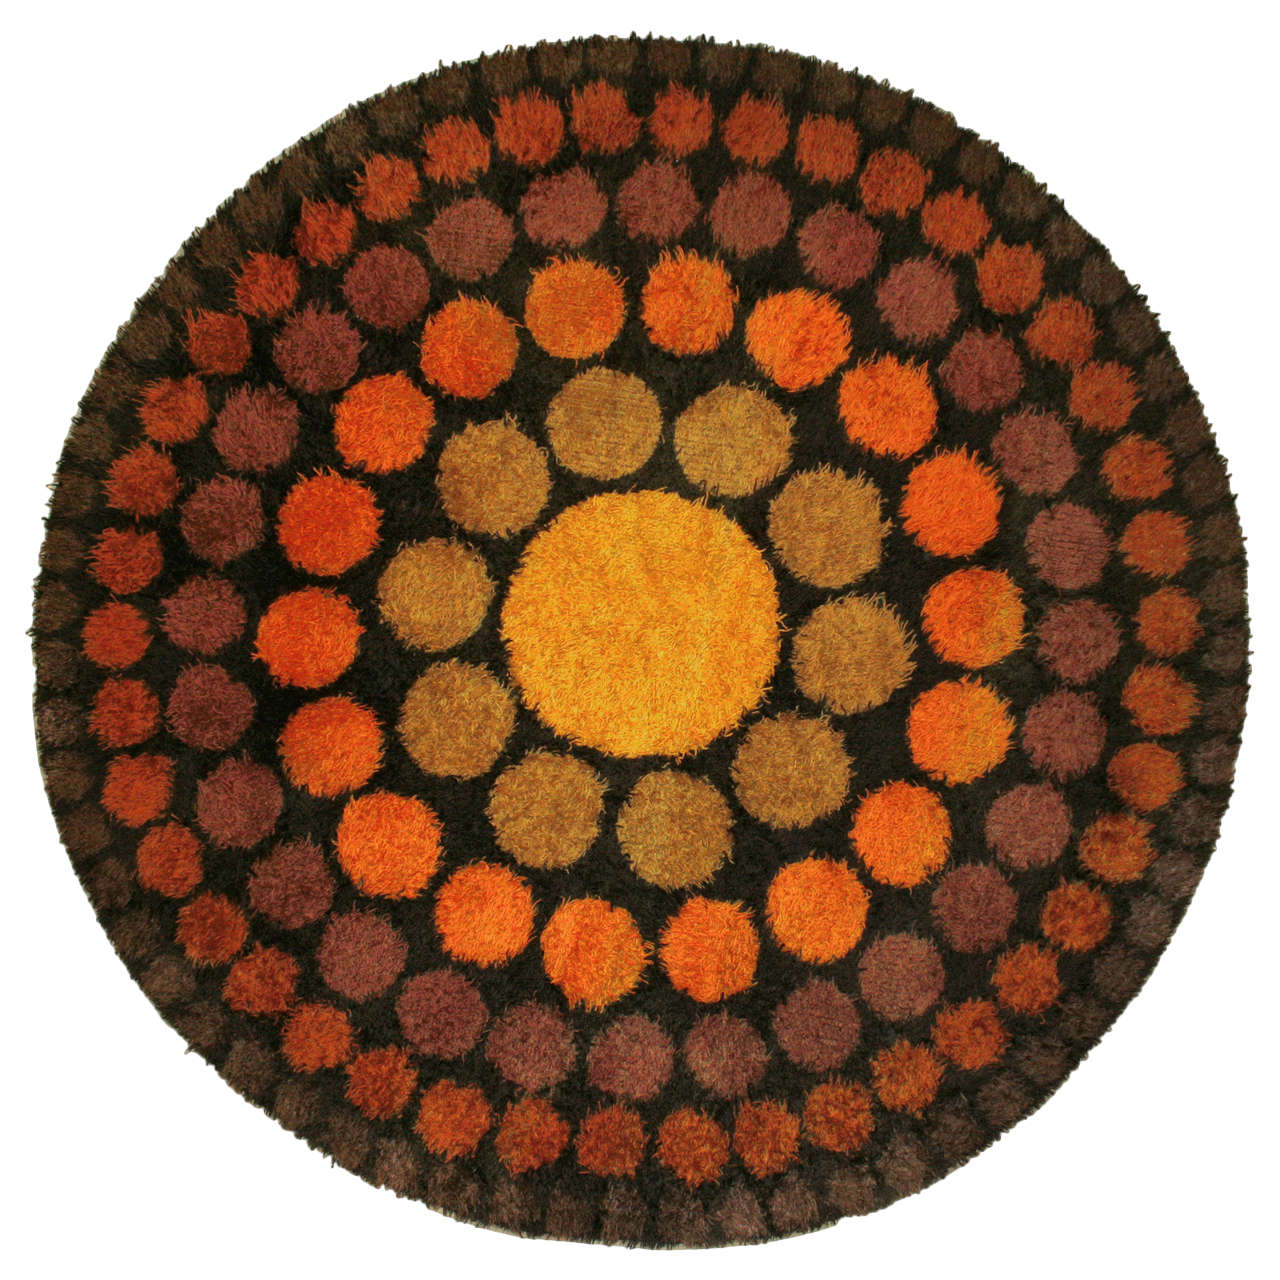 verner panton rugs and carpets   for sale at stdibs - roulette carpet by verner panton